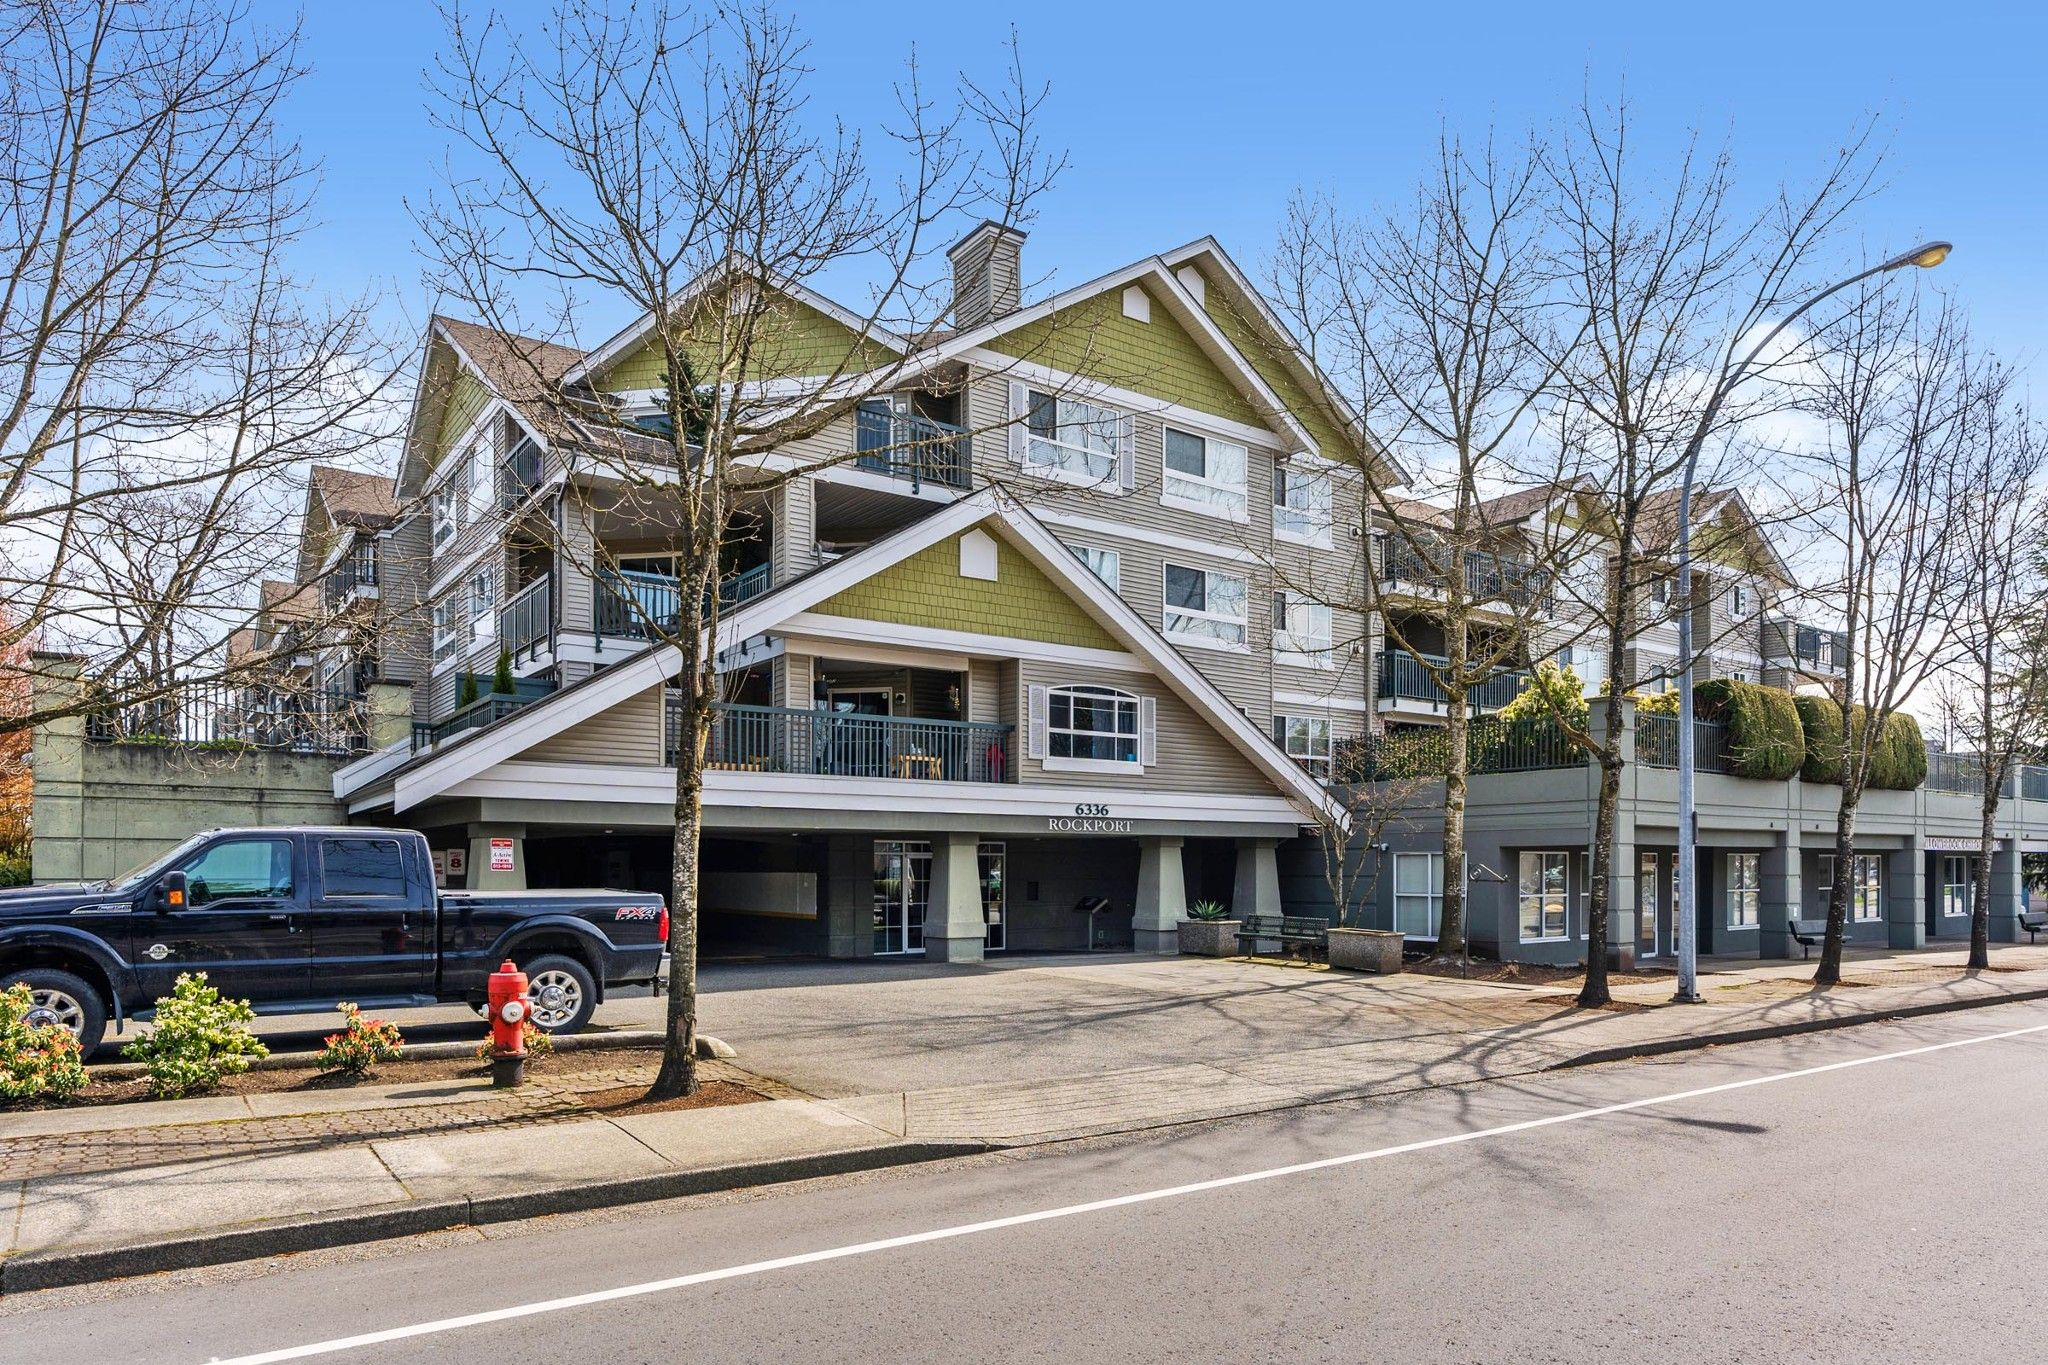 """Main Photo: 304 6336 197 Street in Langley: Willoughby Heights Condo for sale in """"ROCKPORT"""" : MLS®# R2561442"""